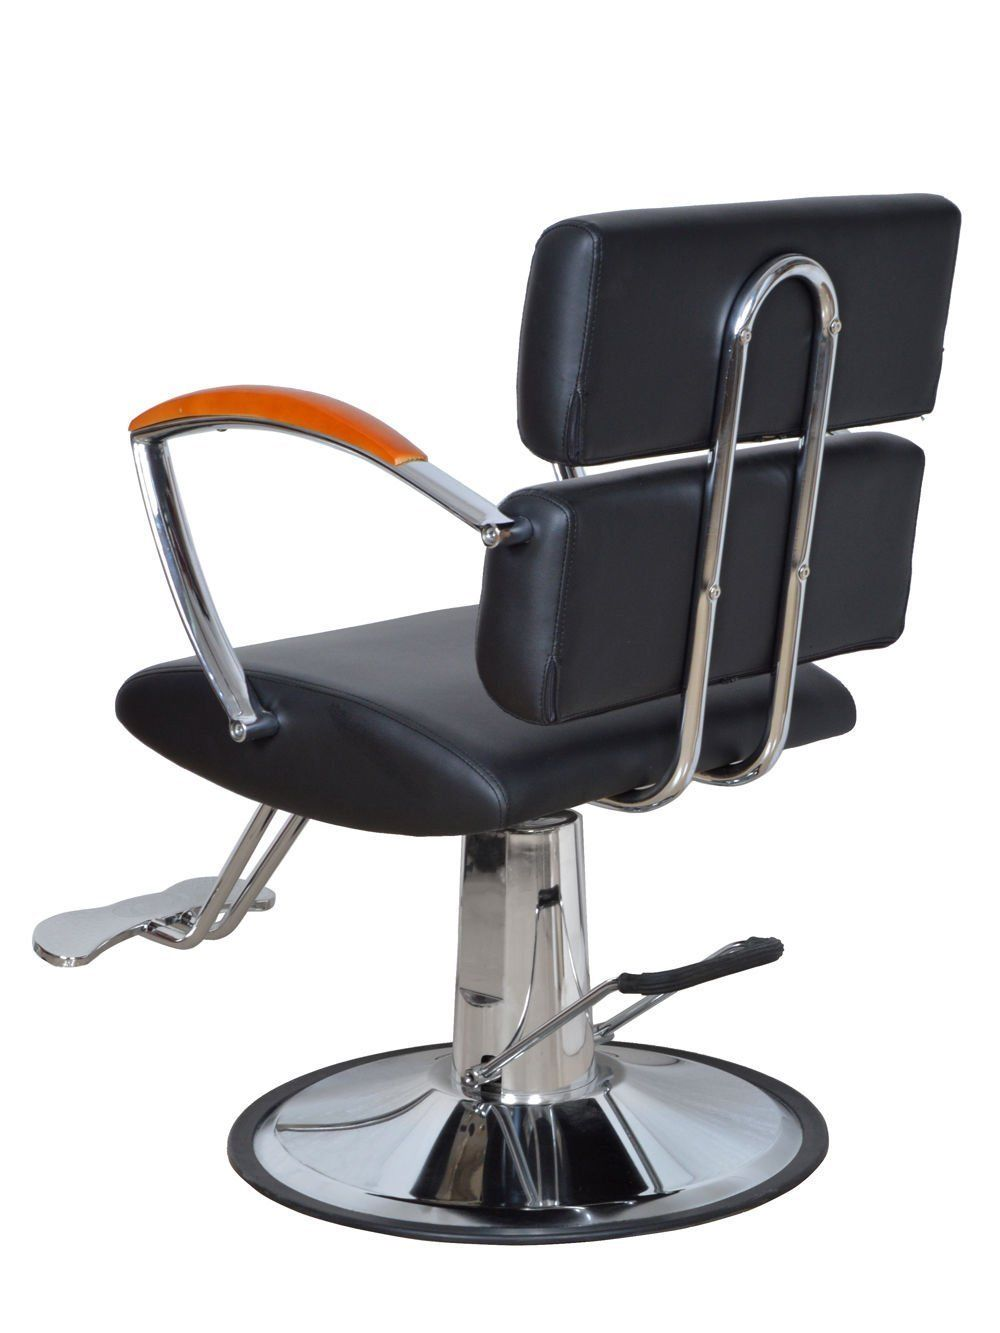 hydraulic hair styling chairs hydraulic adjustable barber chair hair styling salon 7463